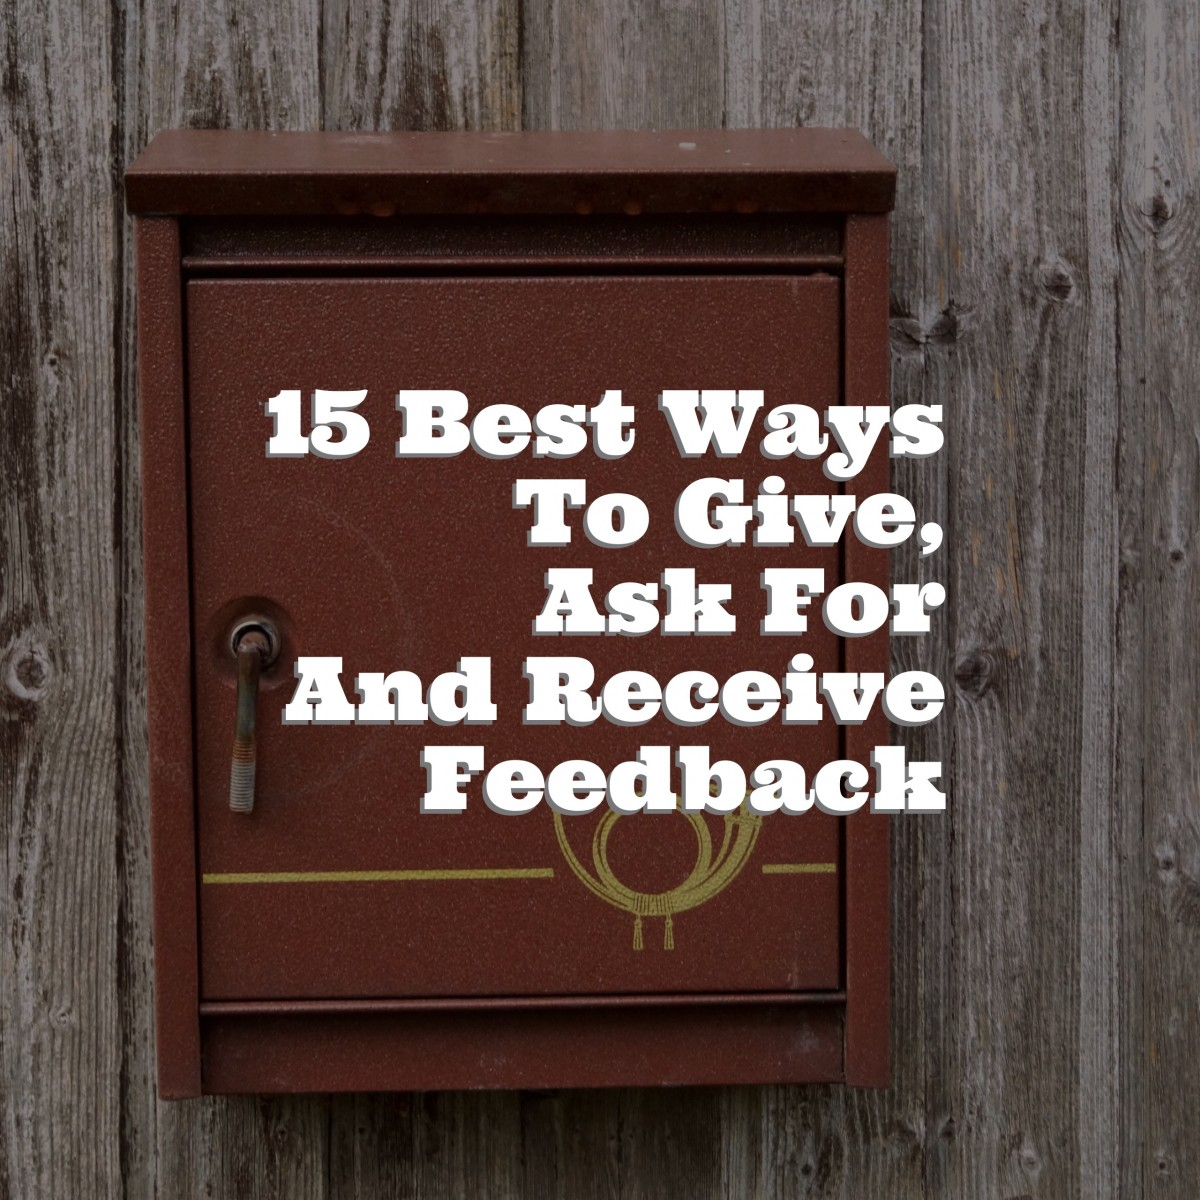 C4366604-5010-49D9-8A00-45B6B386EAC2 15 Best Ways To Give, Ask For And Receive Feedback work environment people learning leadership career behaviour advice